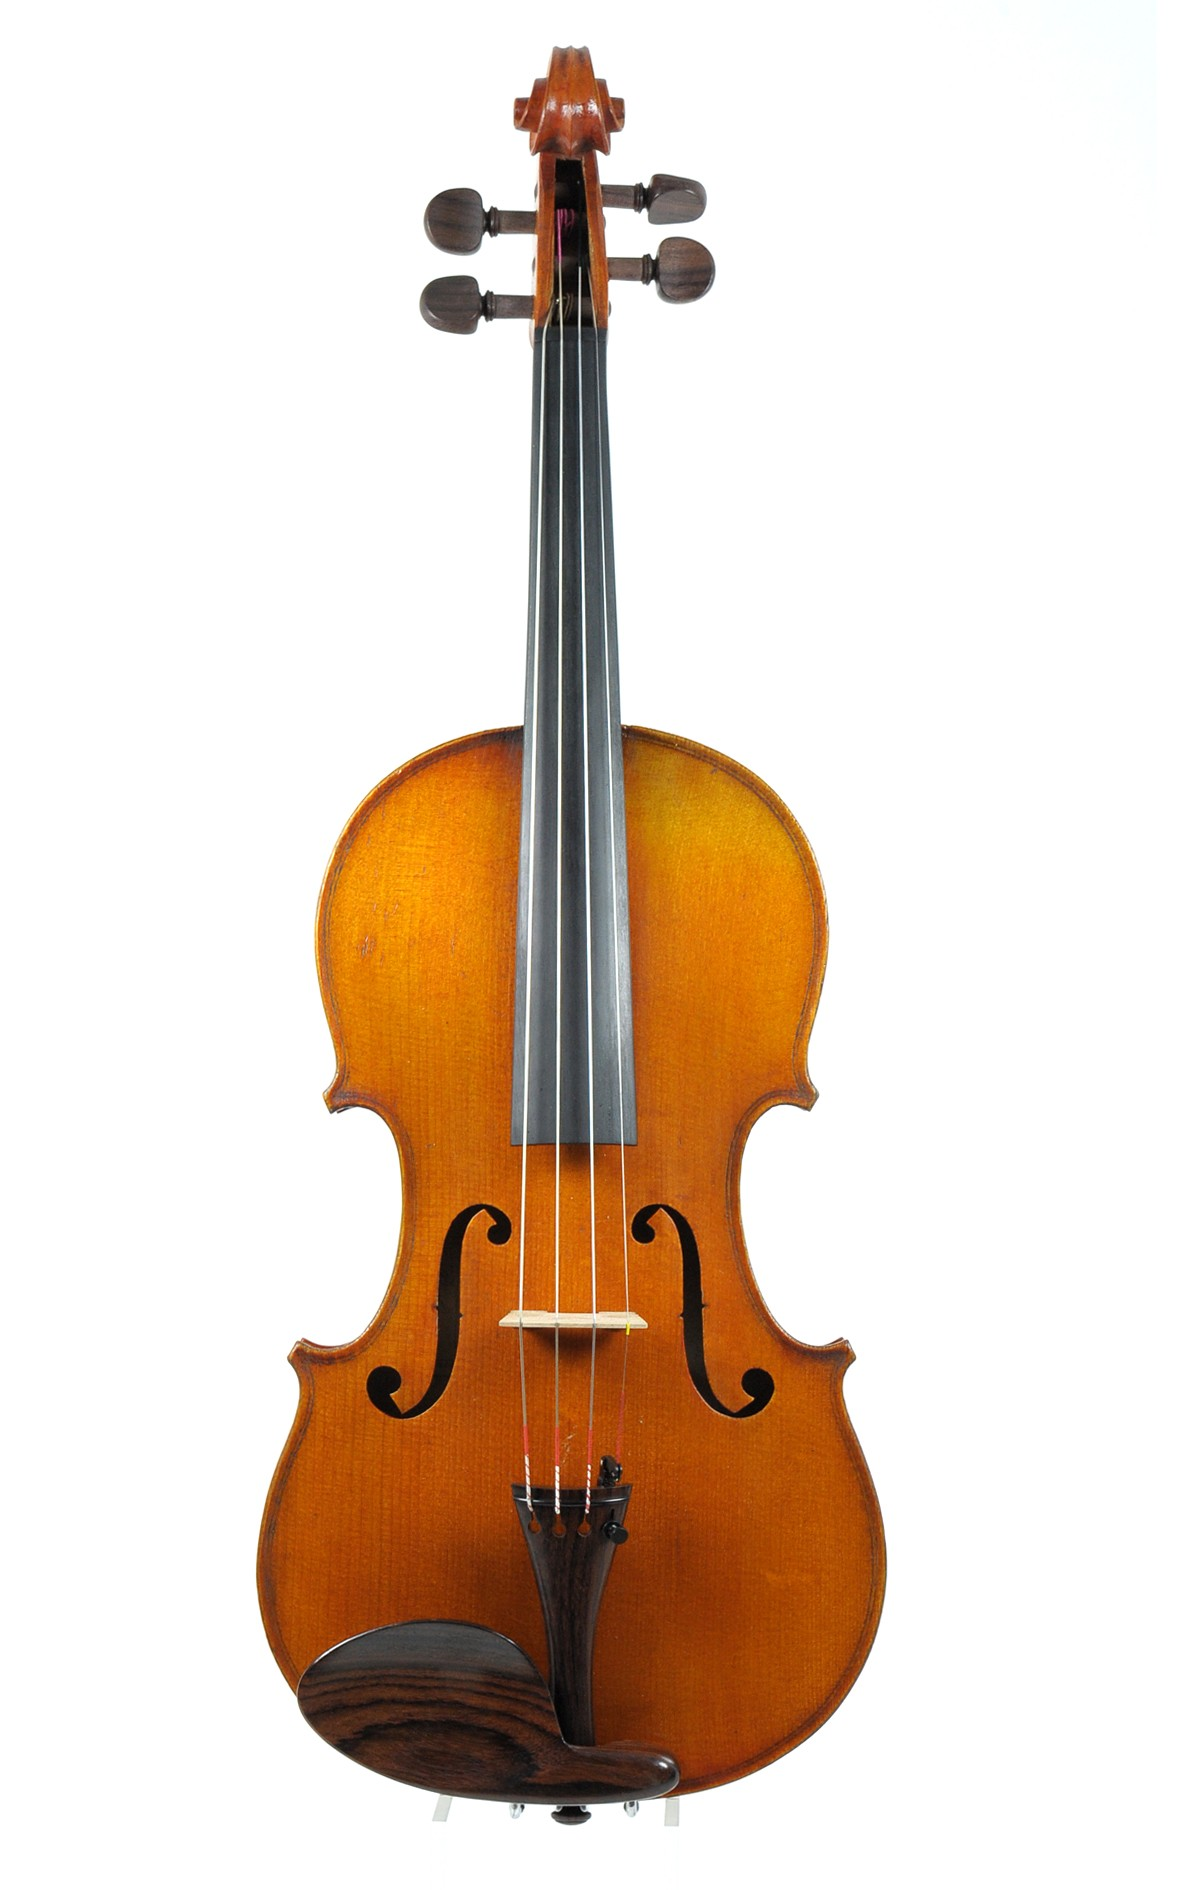 French Phebes violin, Mirecourt ca. 1900 - top